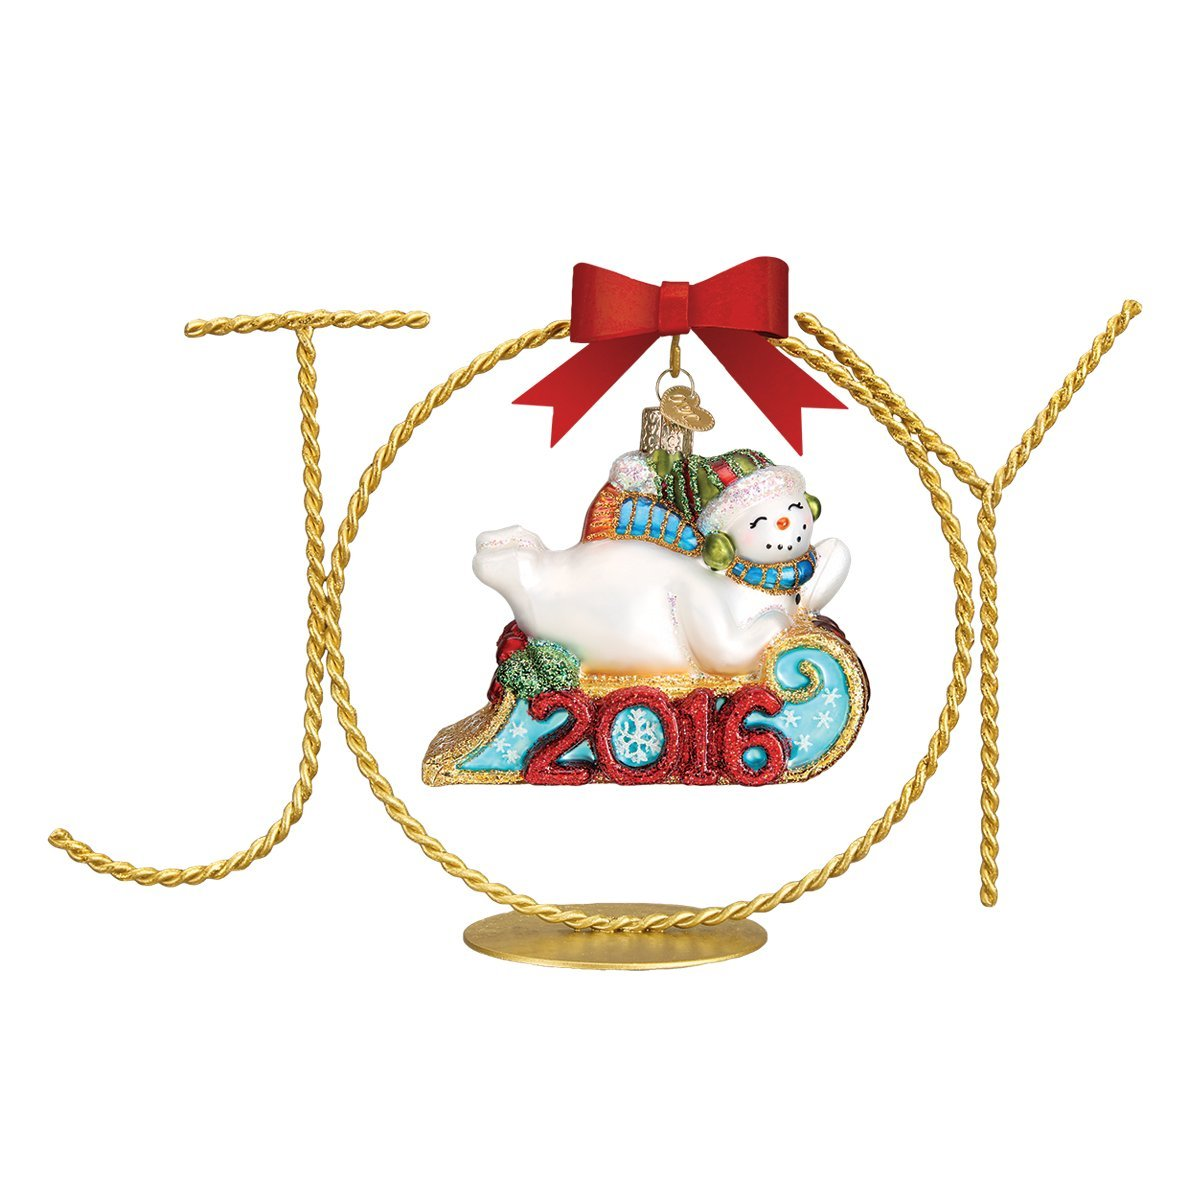 Old World Christmas Ornaments Single Joy Stand Glass Blown Ornaments For Christmas Tree